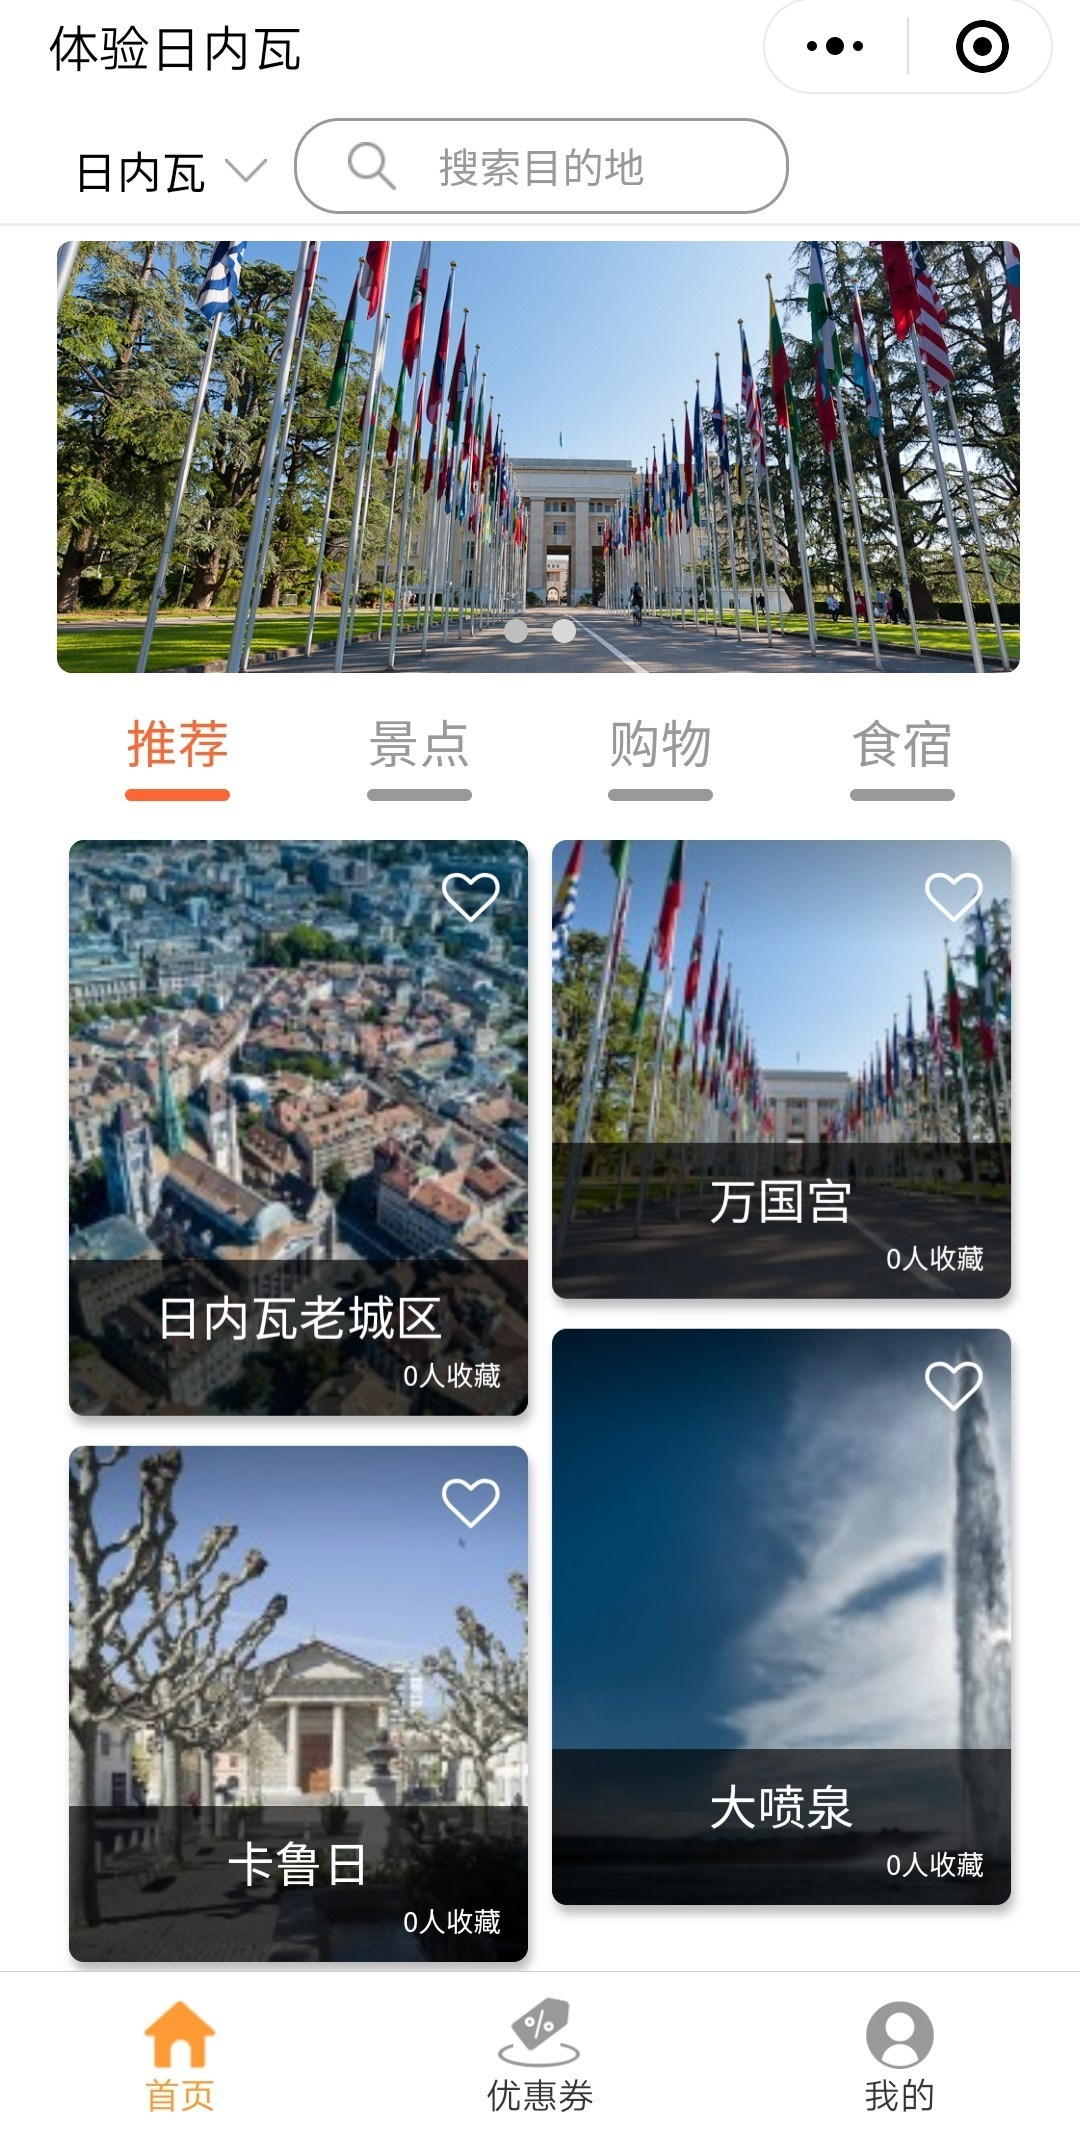 Geneva Tourism Wechat Mini-Program - WeChat Travel Experience - EuroPass